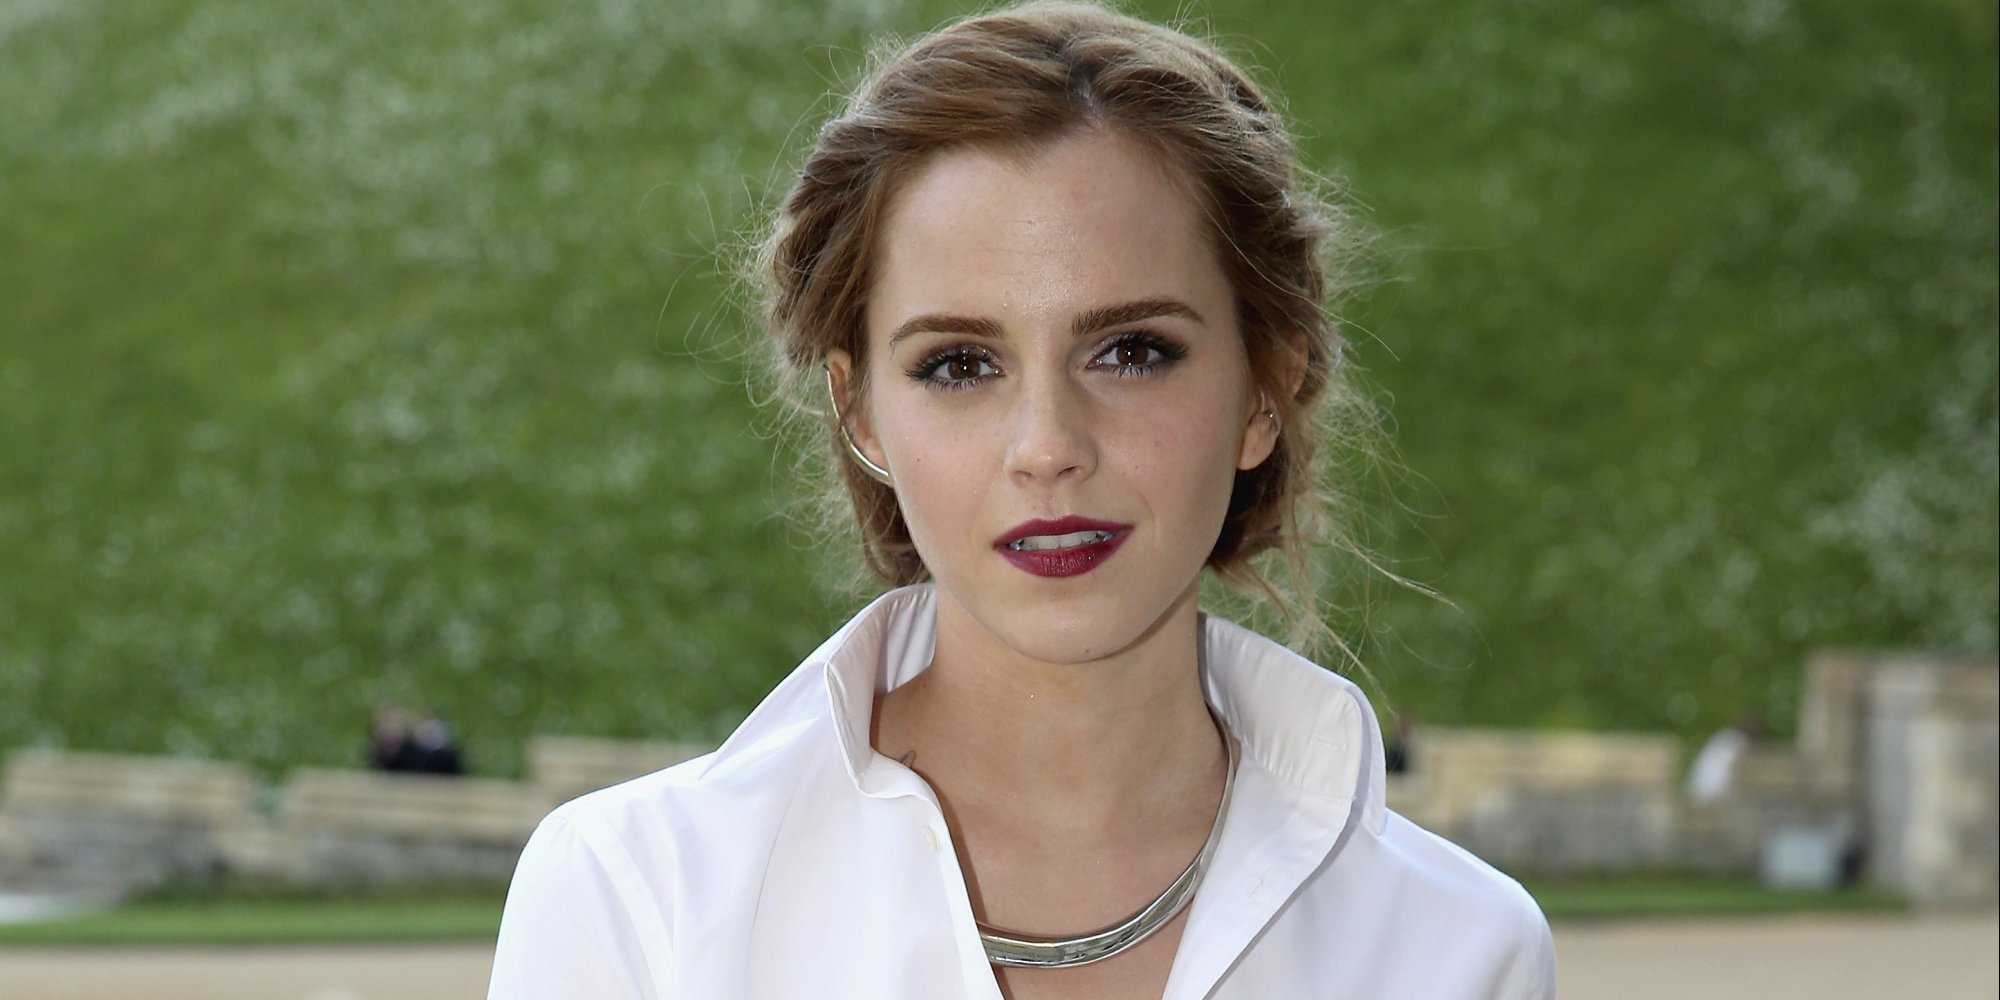 The Emma Watson Threats Were A Hoax, But Women Face ...